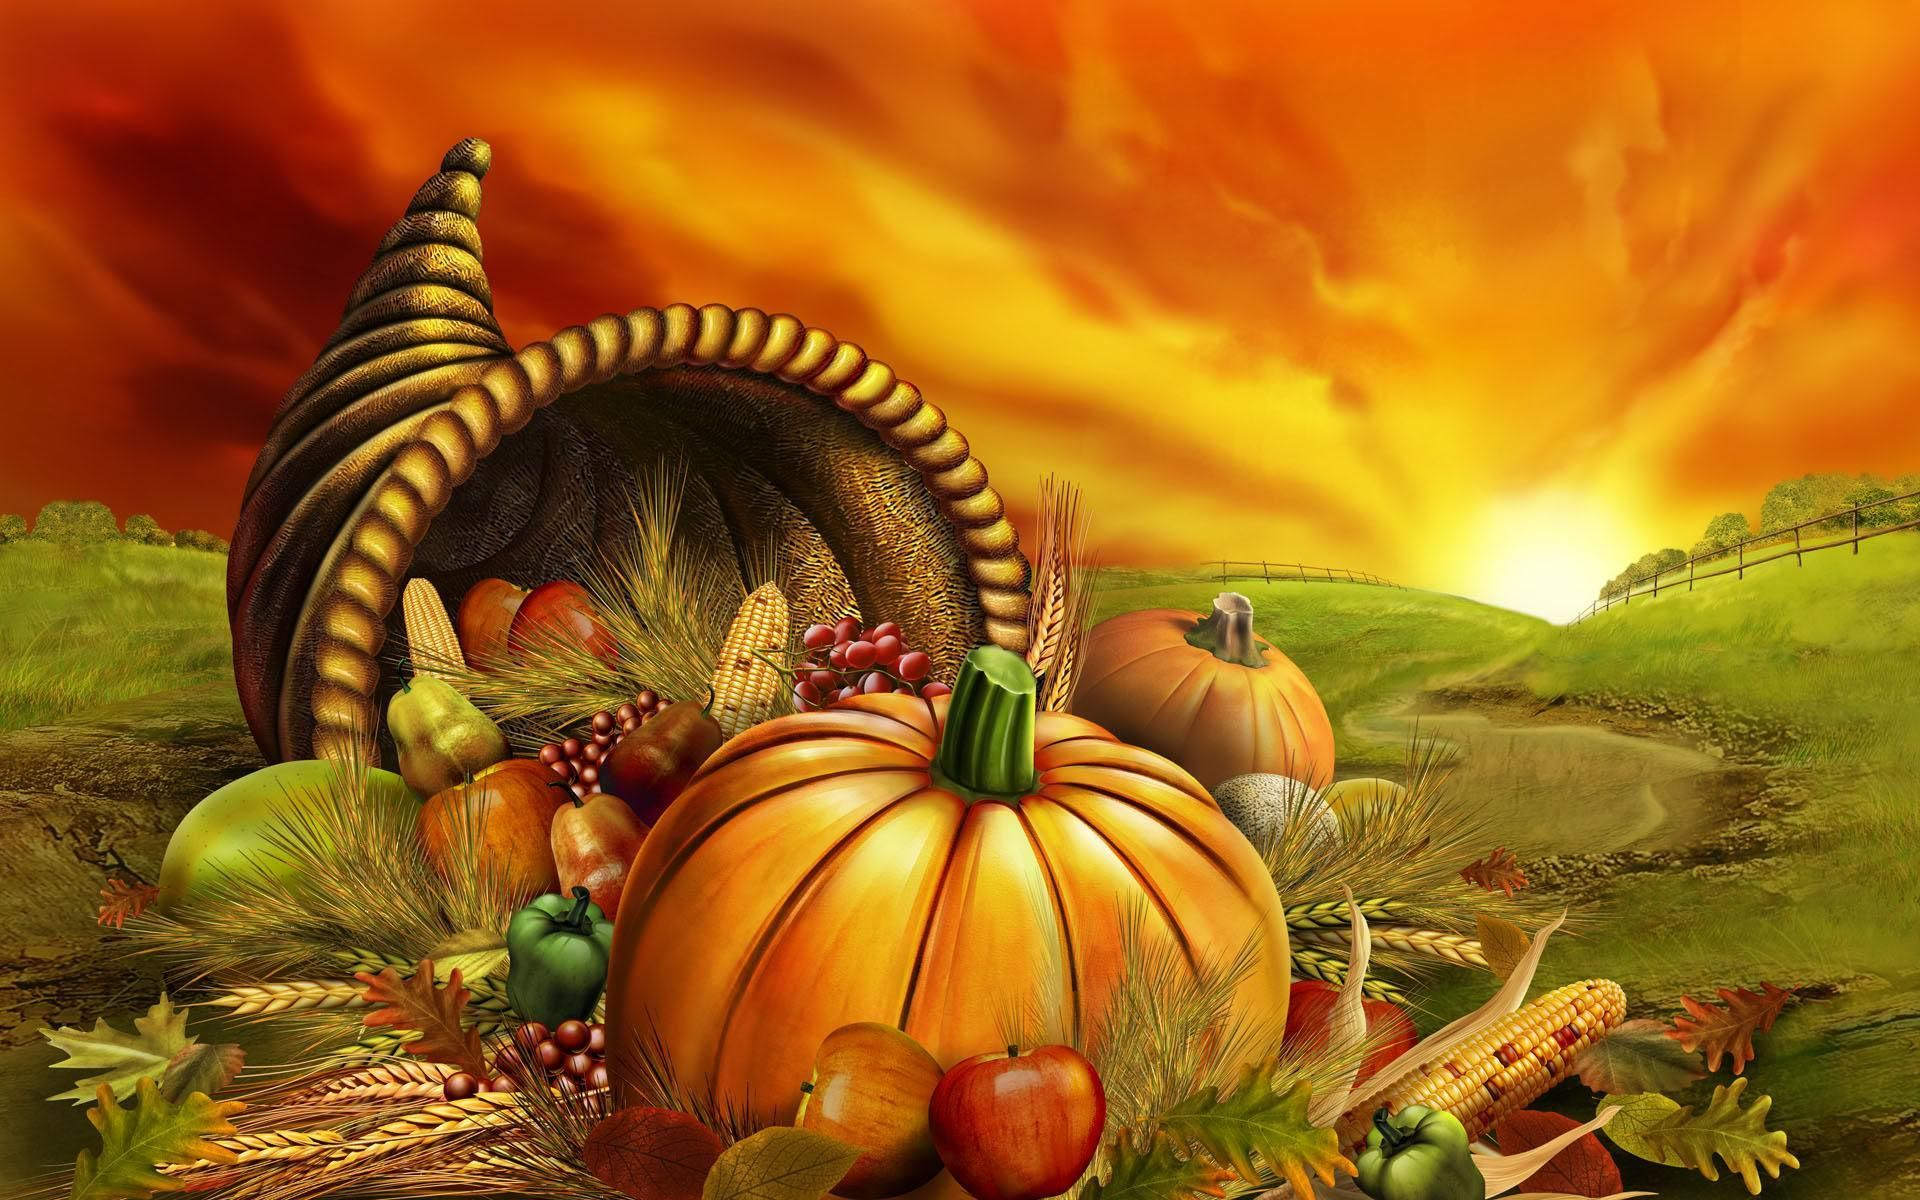 40 Free Thanksgiving Background Wallpapers For Desktop Thanksgiving Images Thanksgiving Pictures Thanksgiving Wallpaper